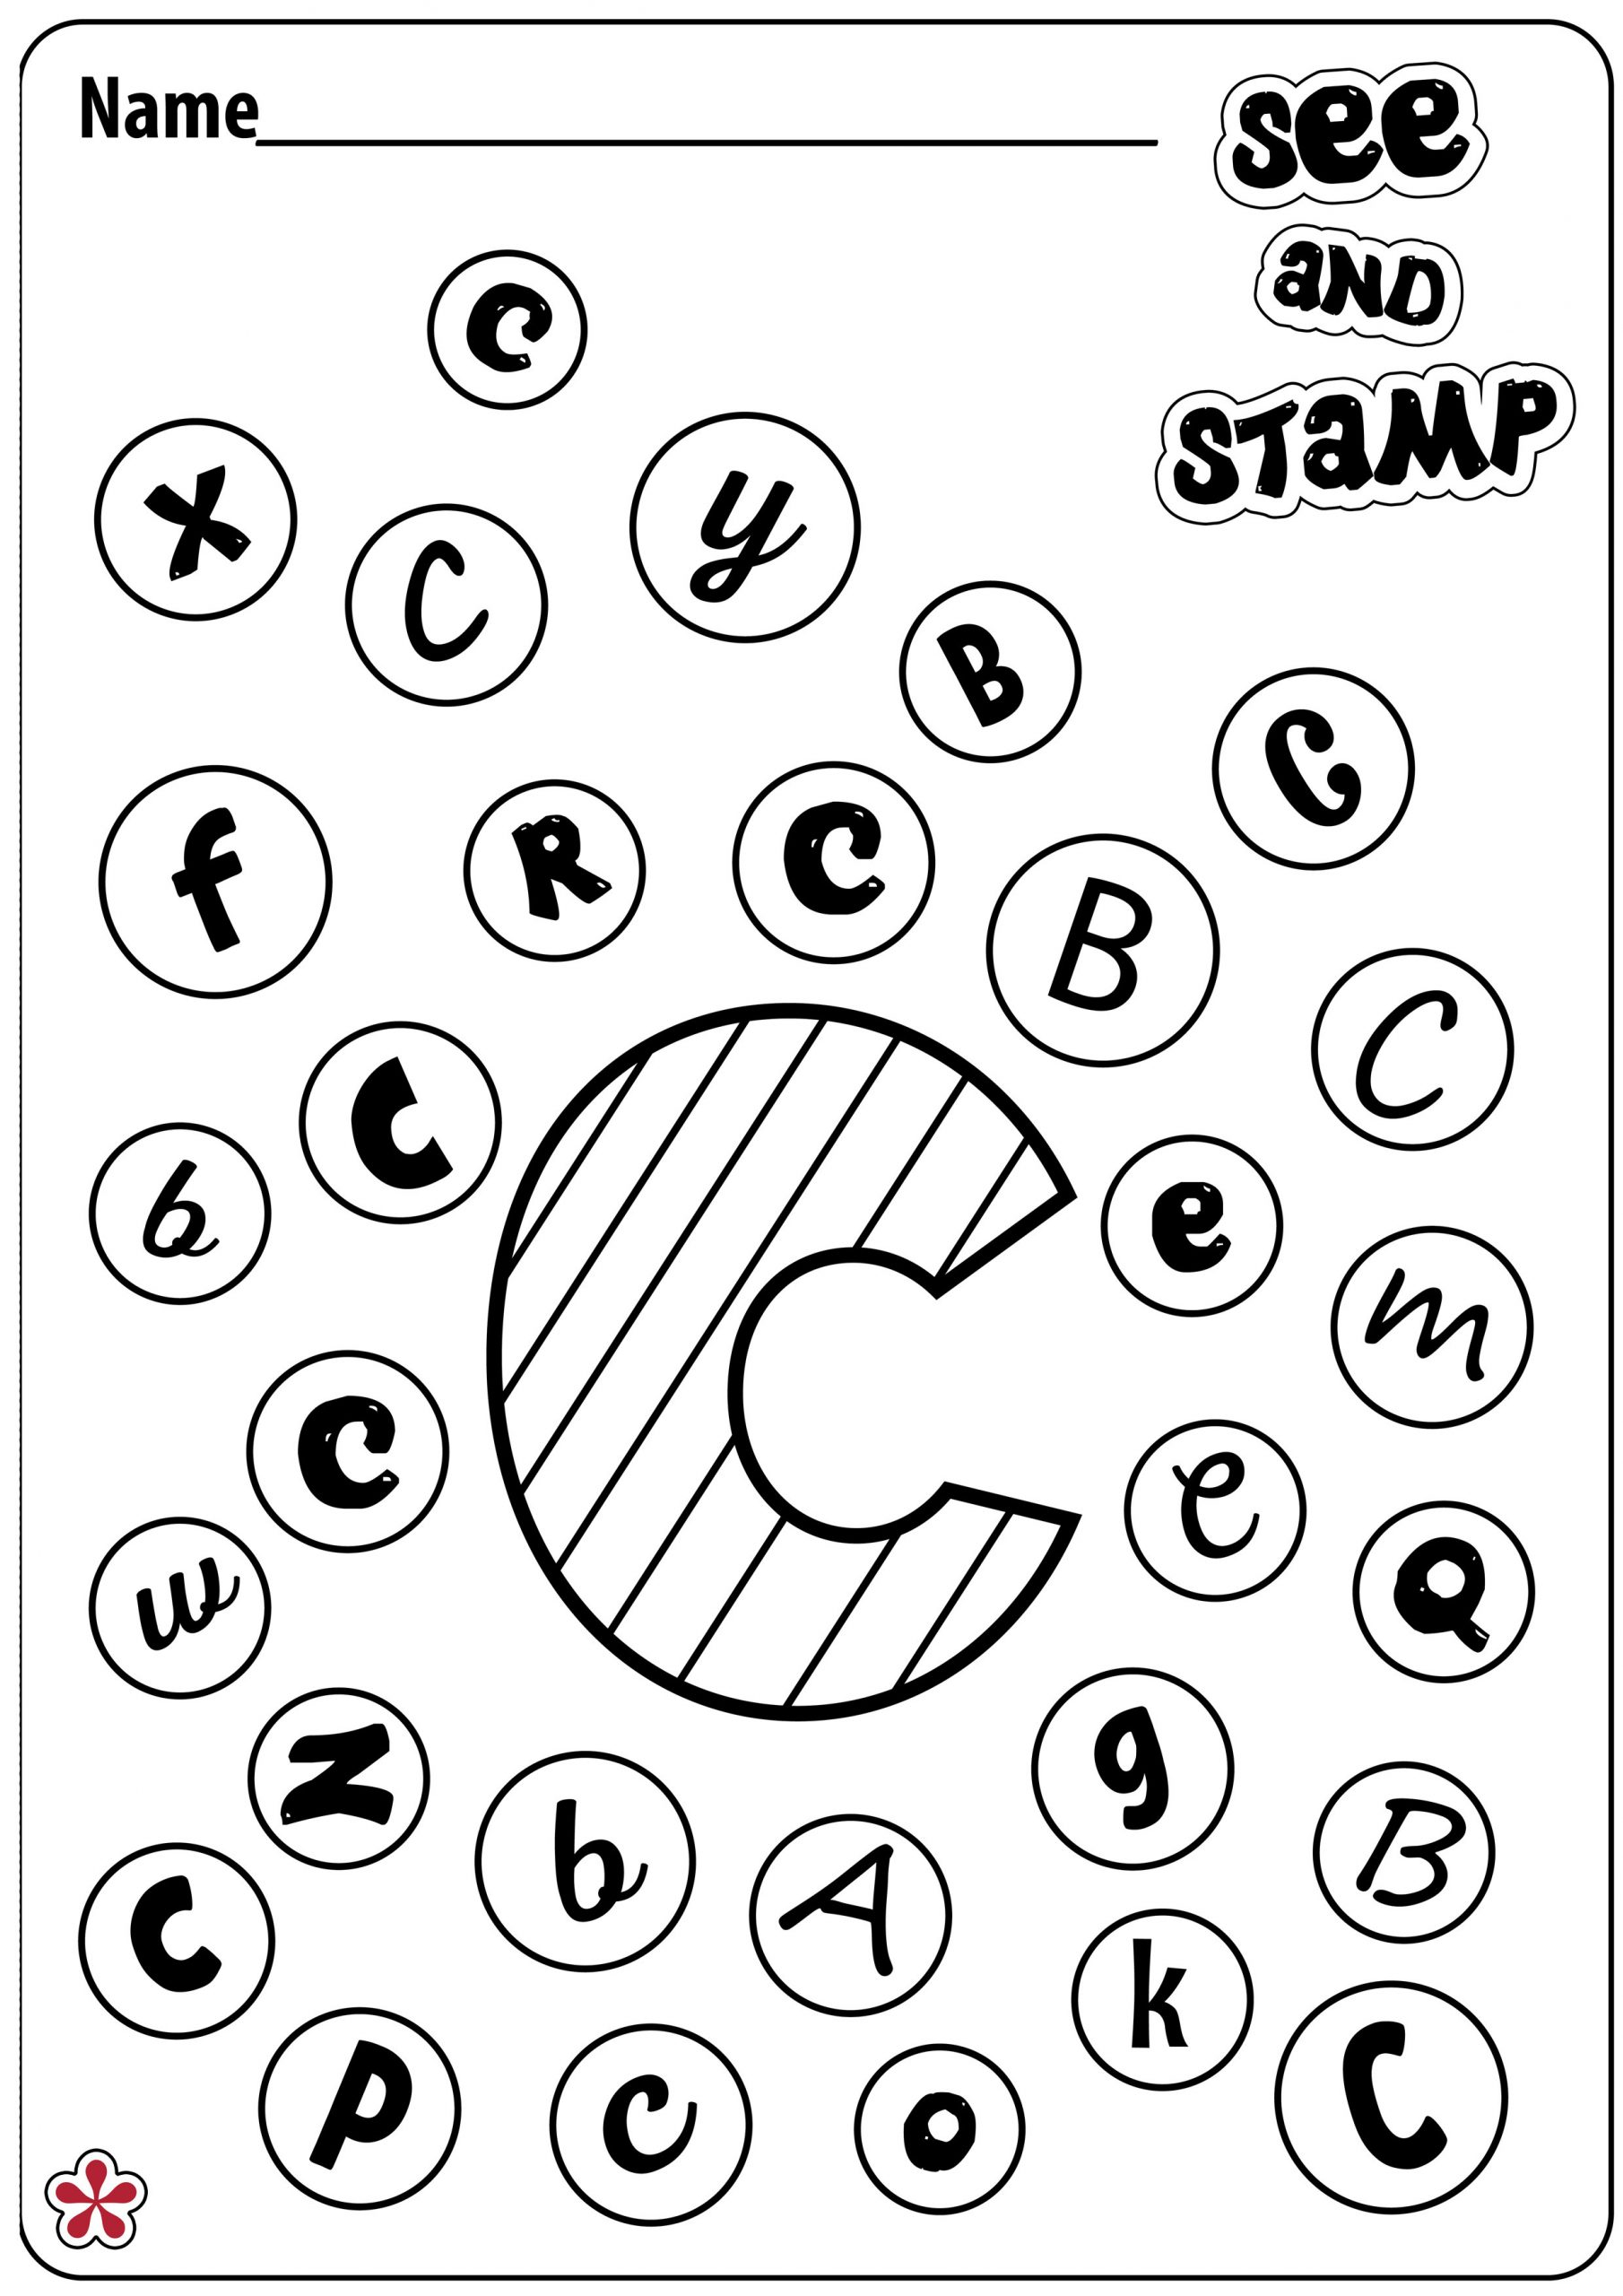 Printable Letter C Worksheets Letter C Worksheets Teachersmag